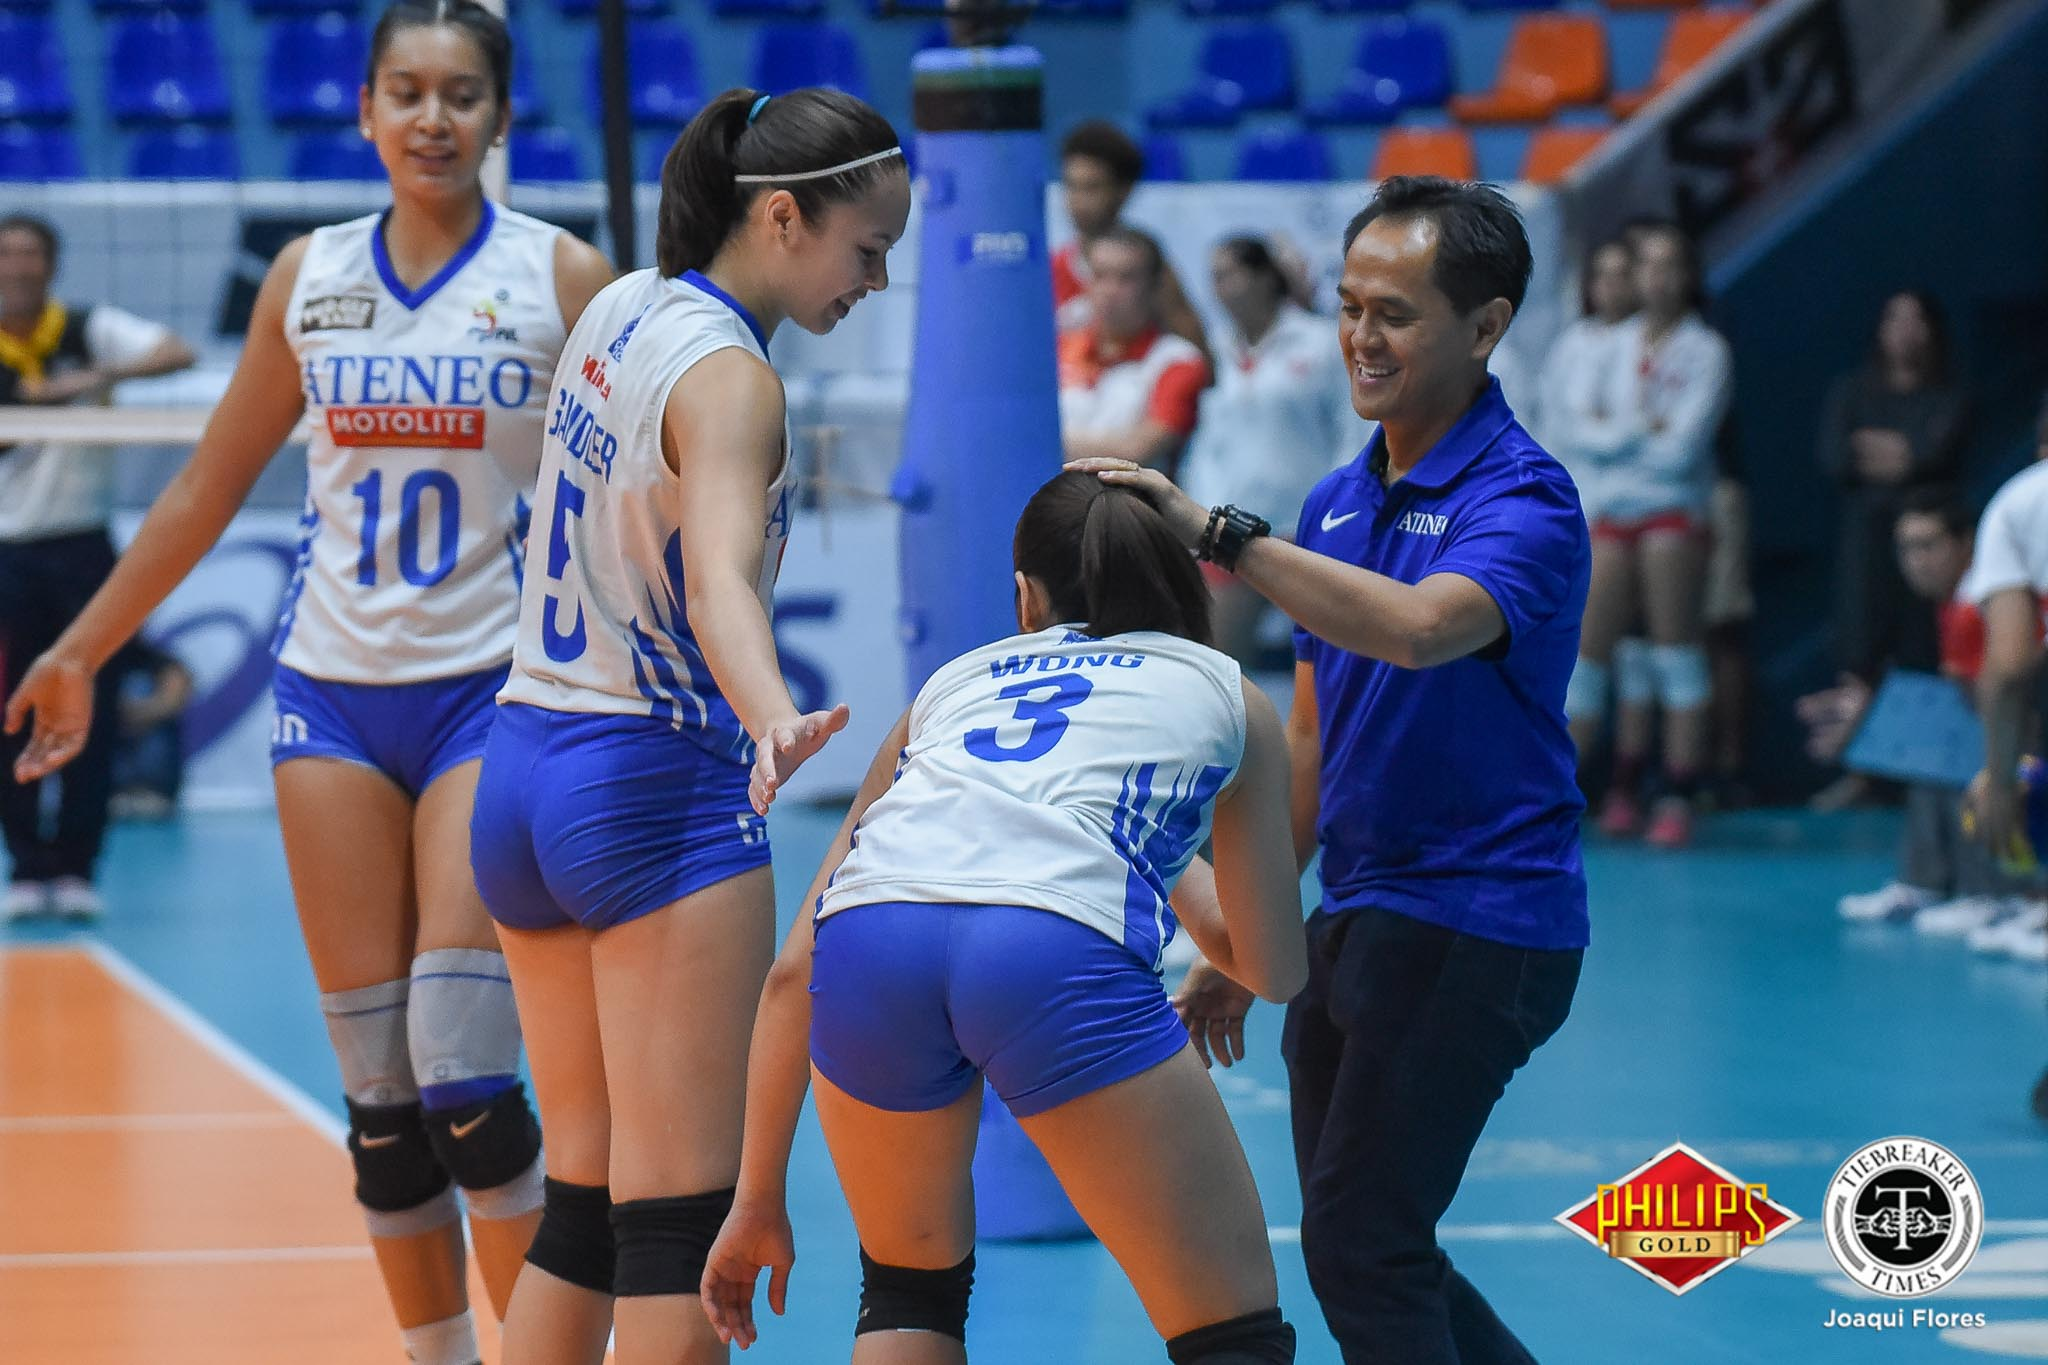 Tiebreaker Times Oliver Almadro optimistic after Ateneo-Motolite loss: 'We have to stand firm in our faith' ADMU News PVL Volleyball  Oliver Almadro Ateneo-Motolite Lady Eagles 2018 PVL Season 2018 PVL Open Conference